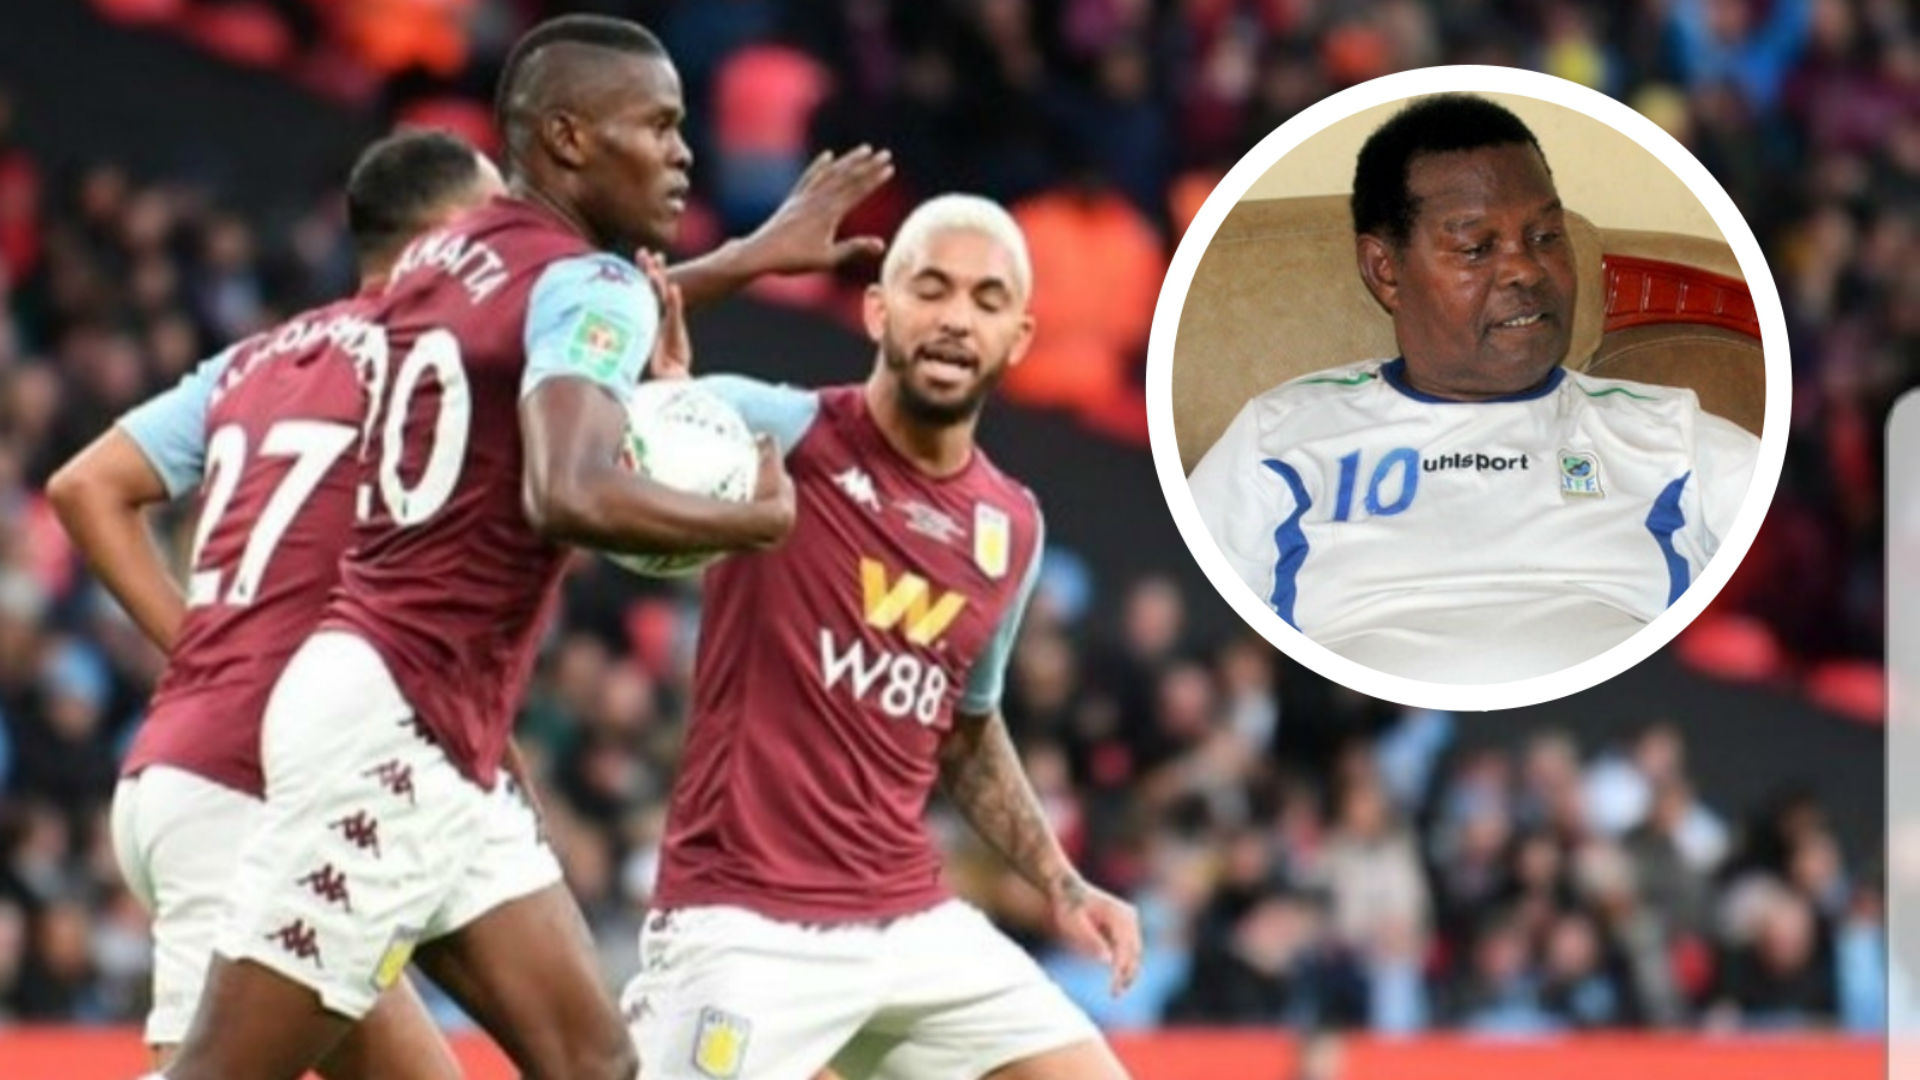 Mzee Samatta: My son is committed to Aston Villa, can only play in England